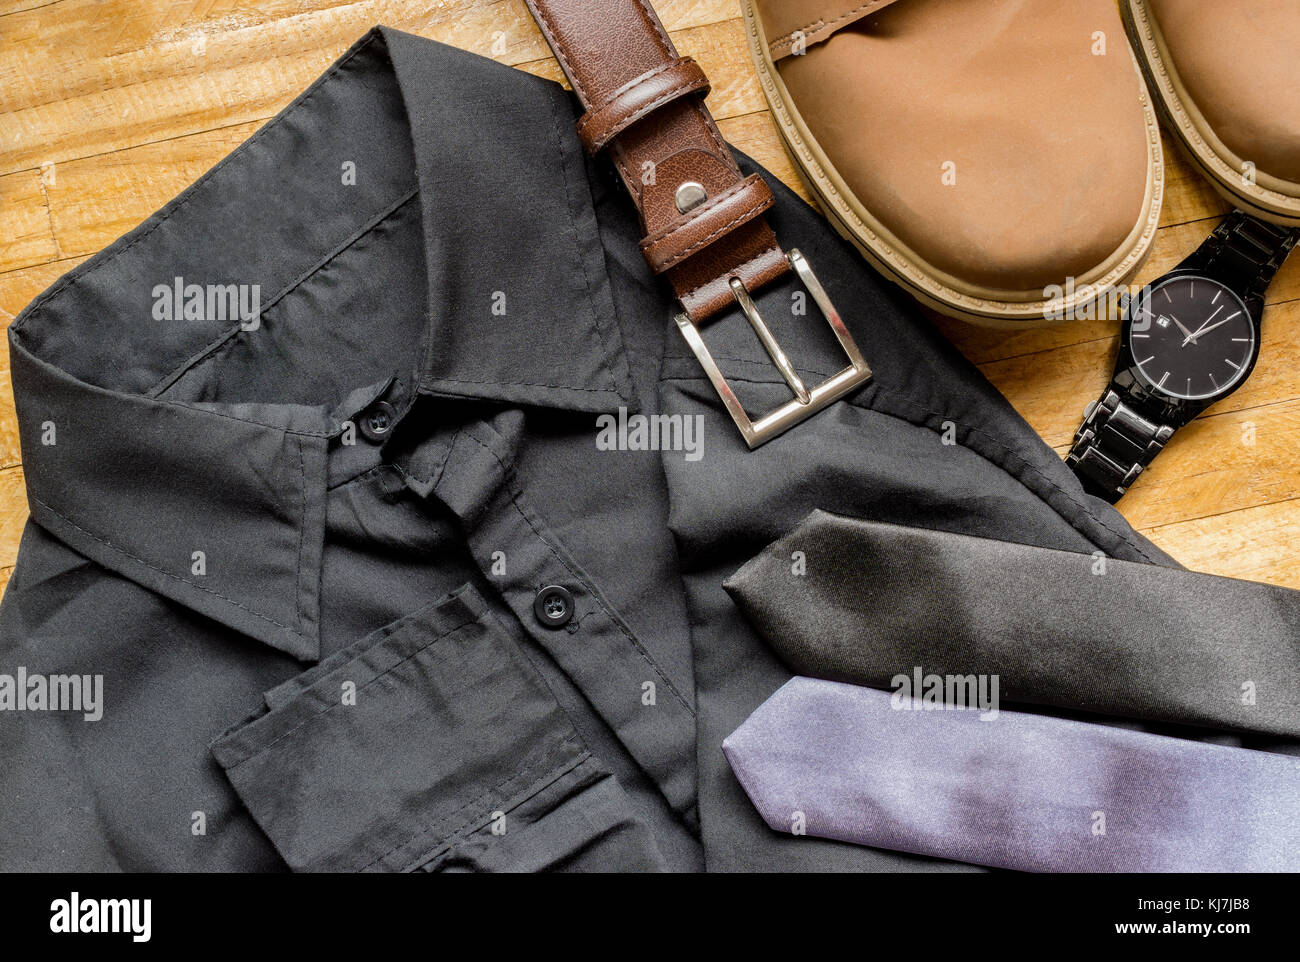 Men's clothes on top of a wooden surface, showing a black dress shirt, brown leather belt, brown boots, neckties - Stock Image